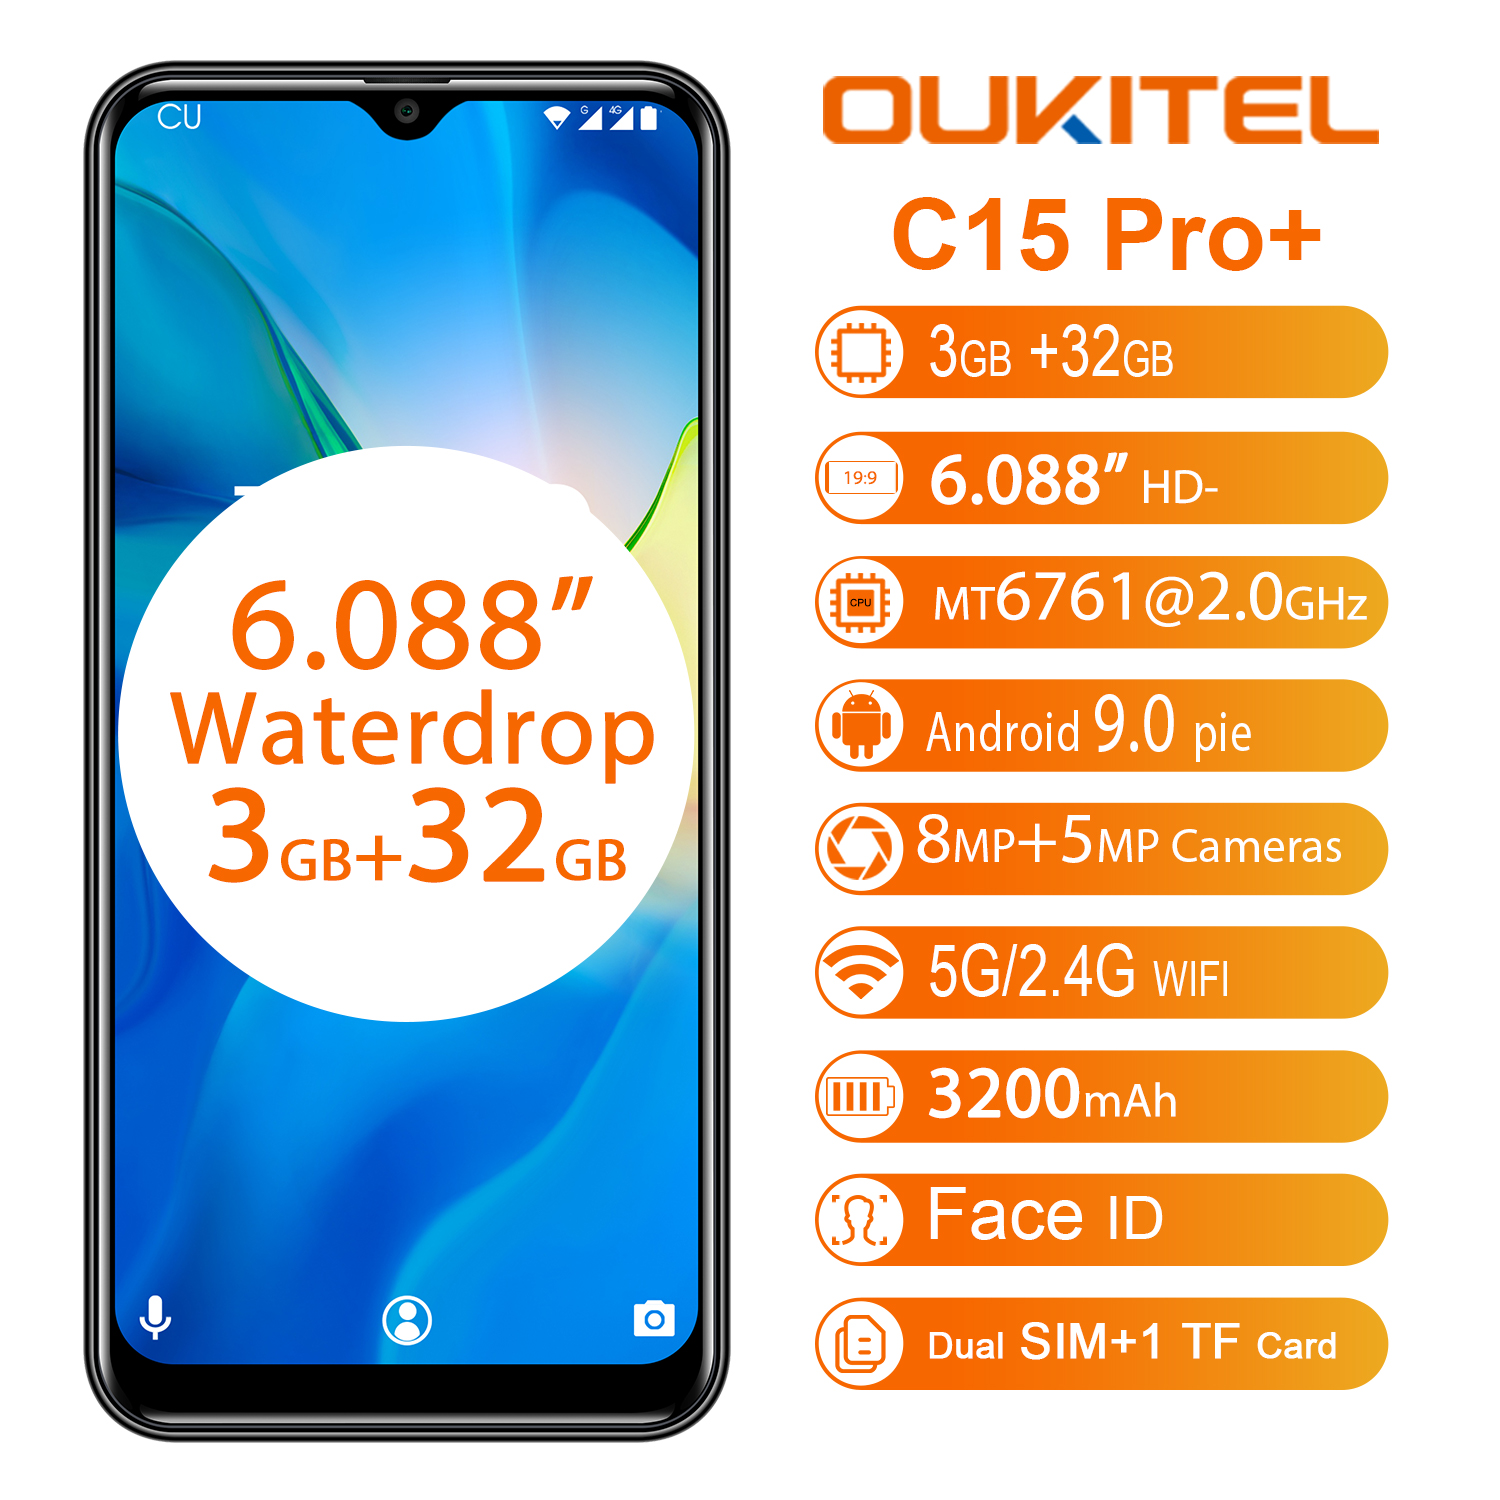 Image 2 - OUKITEL C15 Pro+ 6.088 4G Smartphone 3GB 32GB MT6761 Water Drop Screen 2.4G/5G WiFi Mobile Phone C15 Pro + Fingerprint Face ID-in Cellphones from Cellphones & Telecommunications